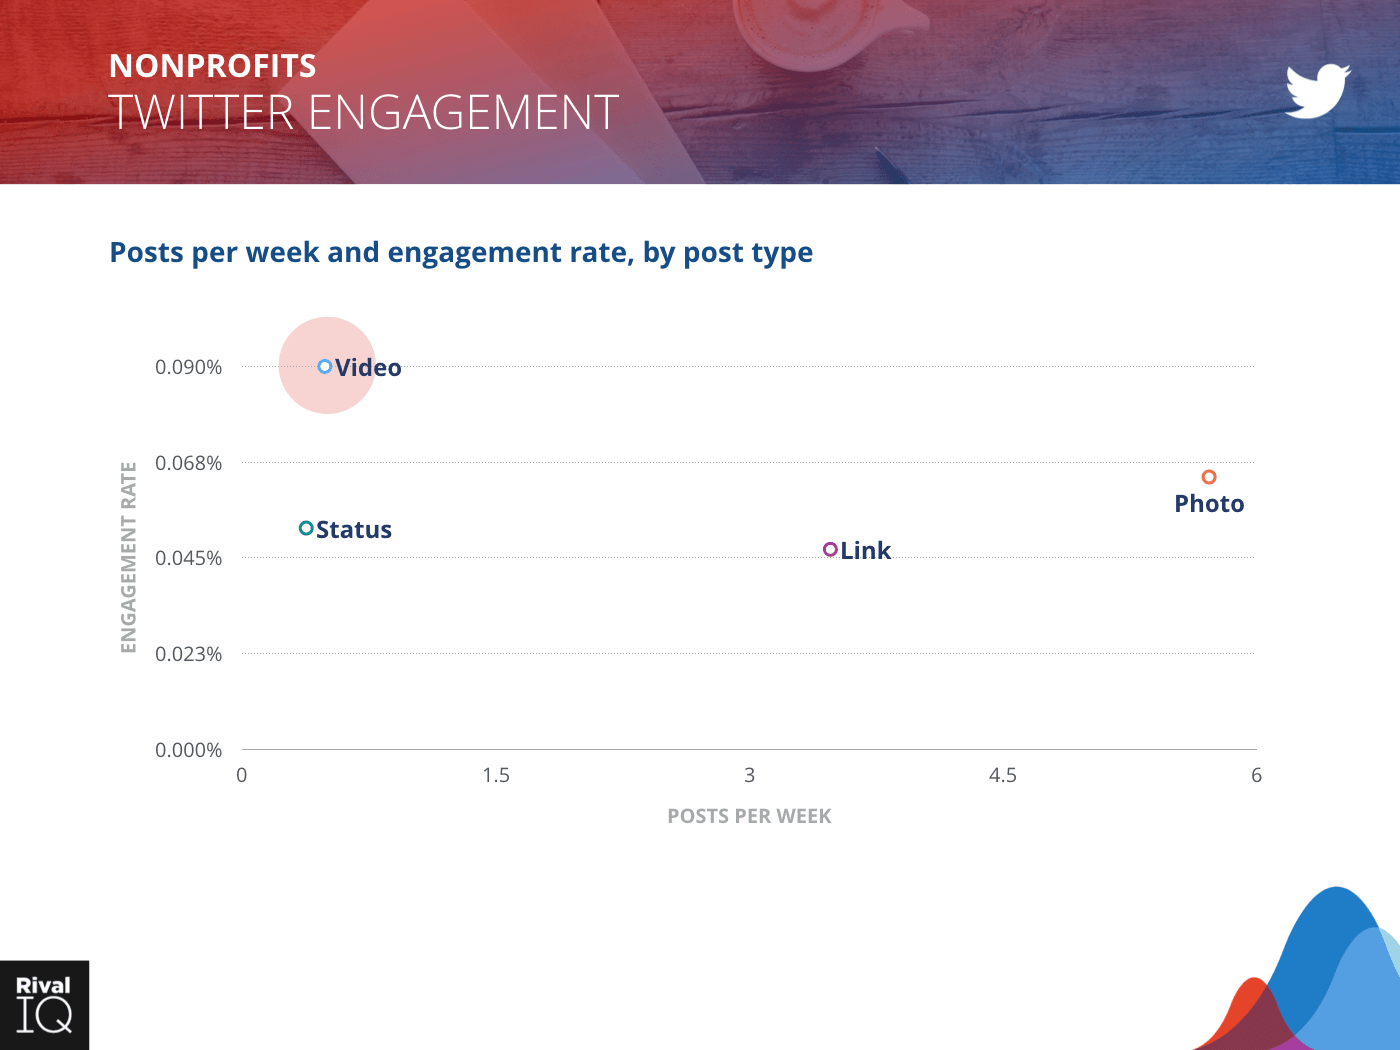 Nonprofit Industry: scatter graph, posts per week and engagement rate on Twitter by post type